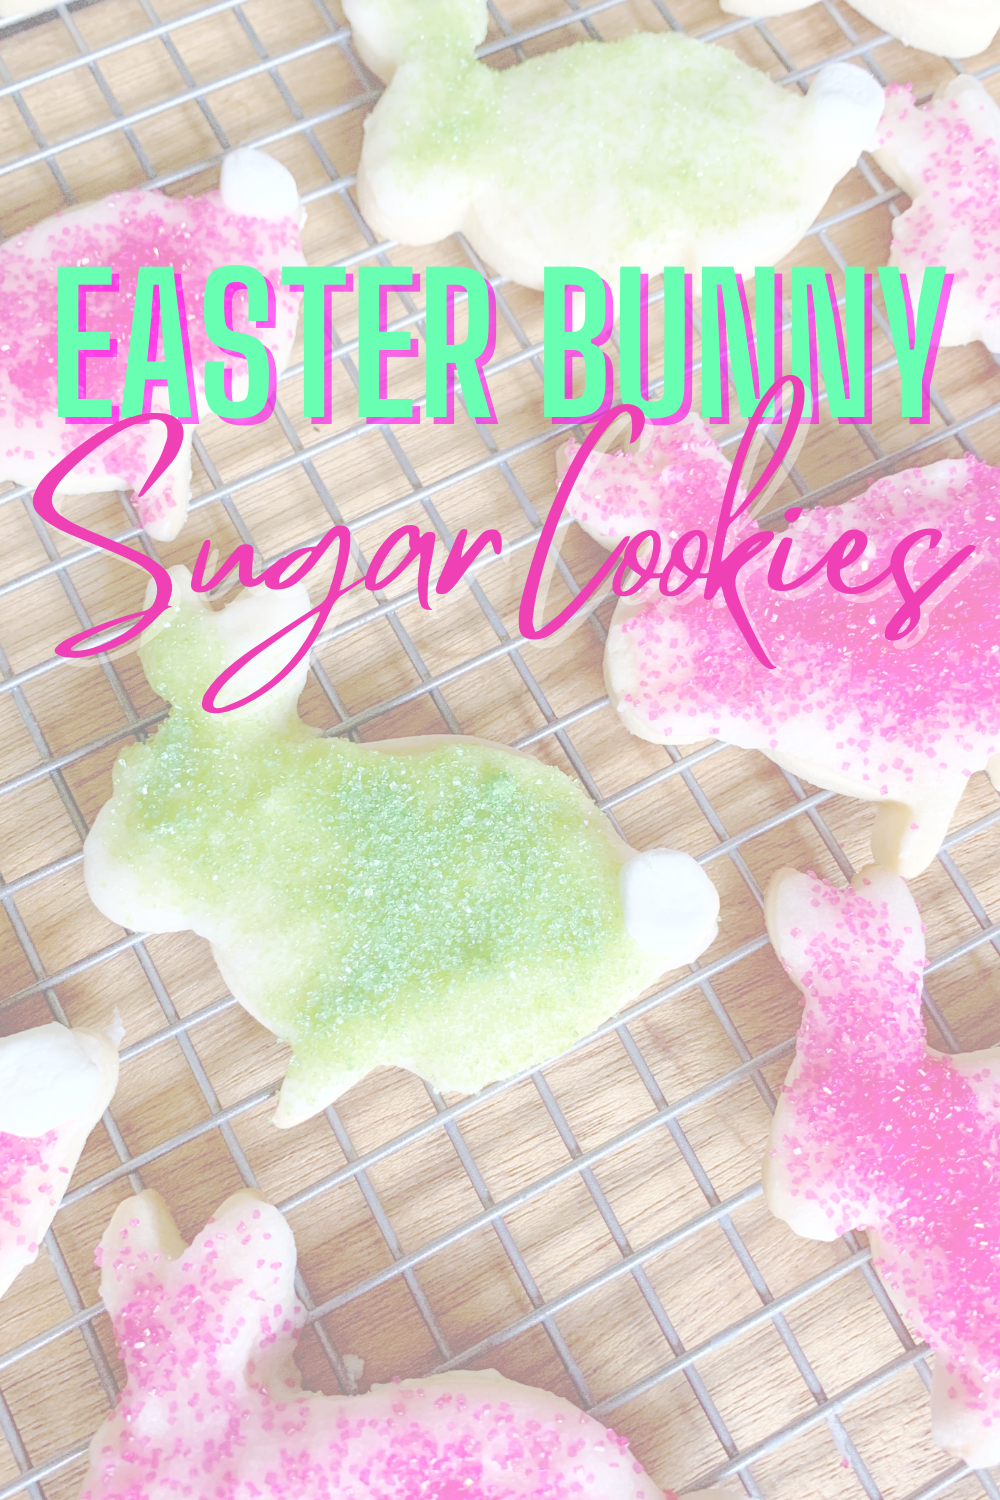 Easter Bunny Cookies - Looking for a delicious Easter cookie recipe? These Easter bunny cookies are simple and cute! | Easter Bunny Cookies | Easter Cookie Recipe